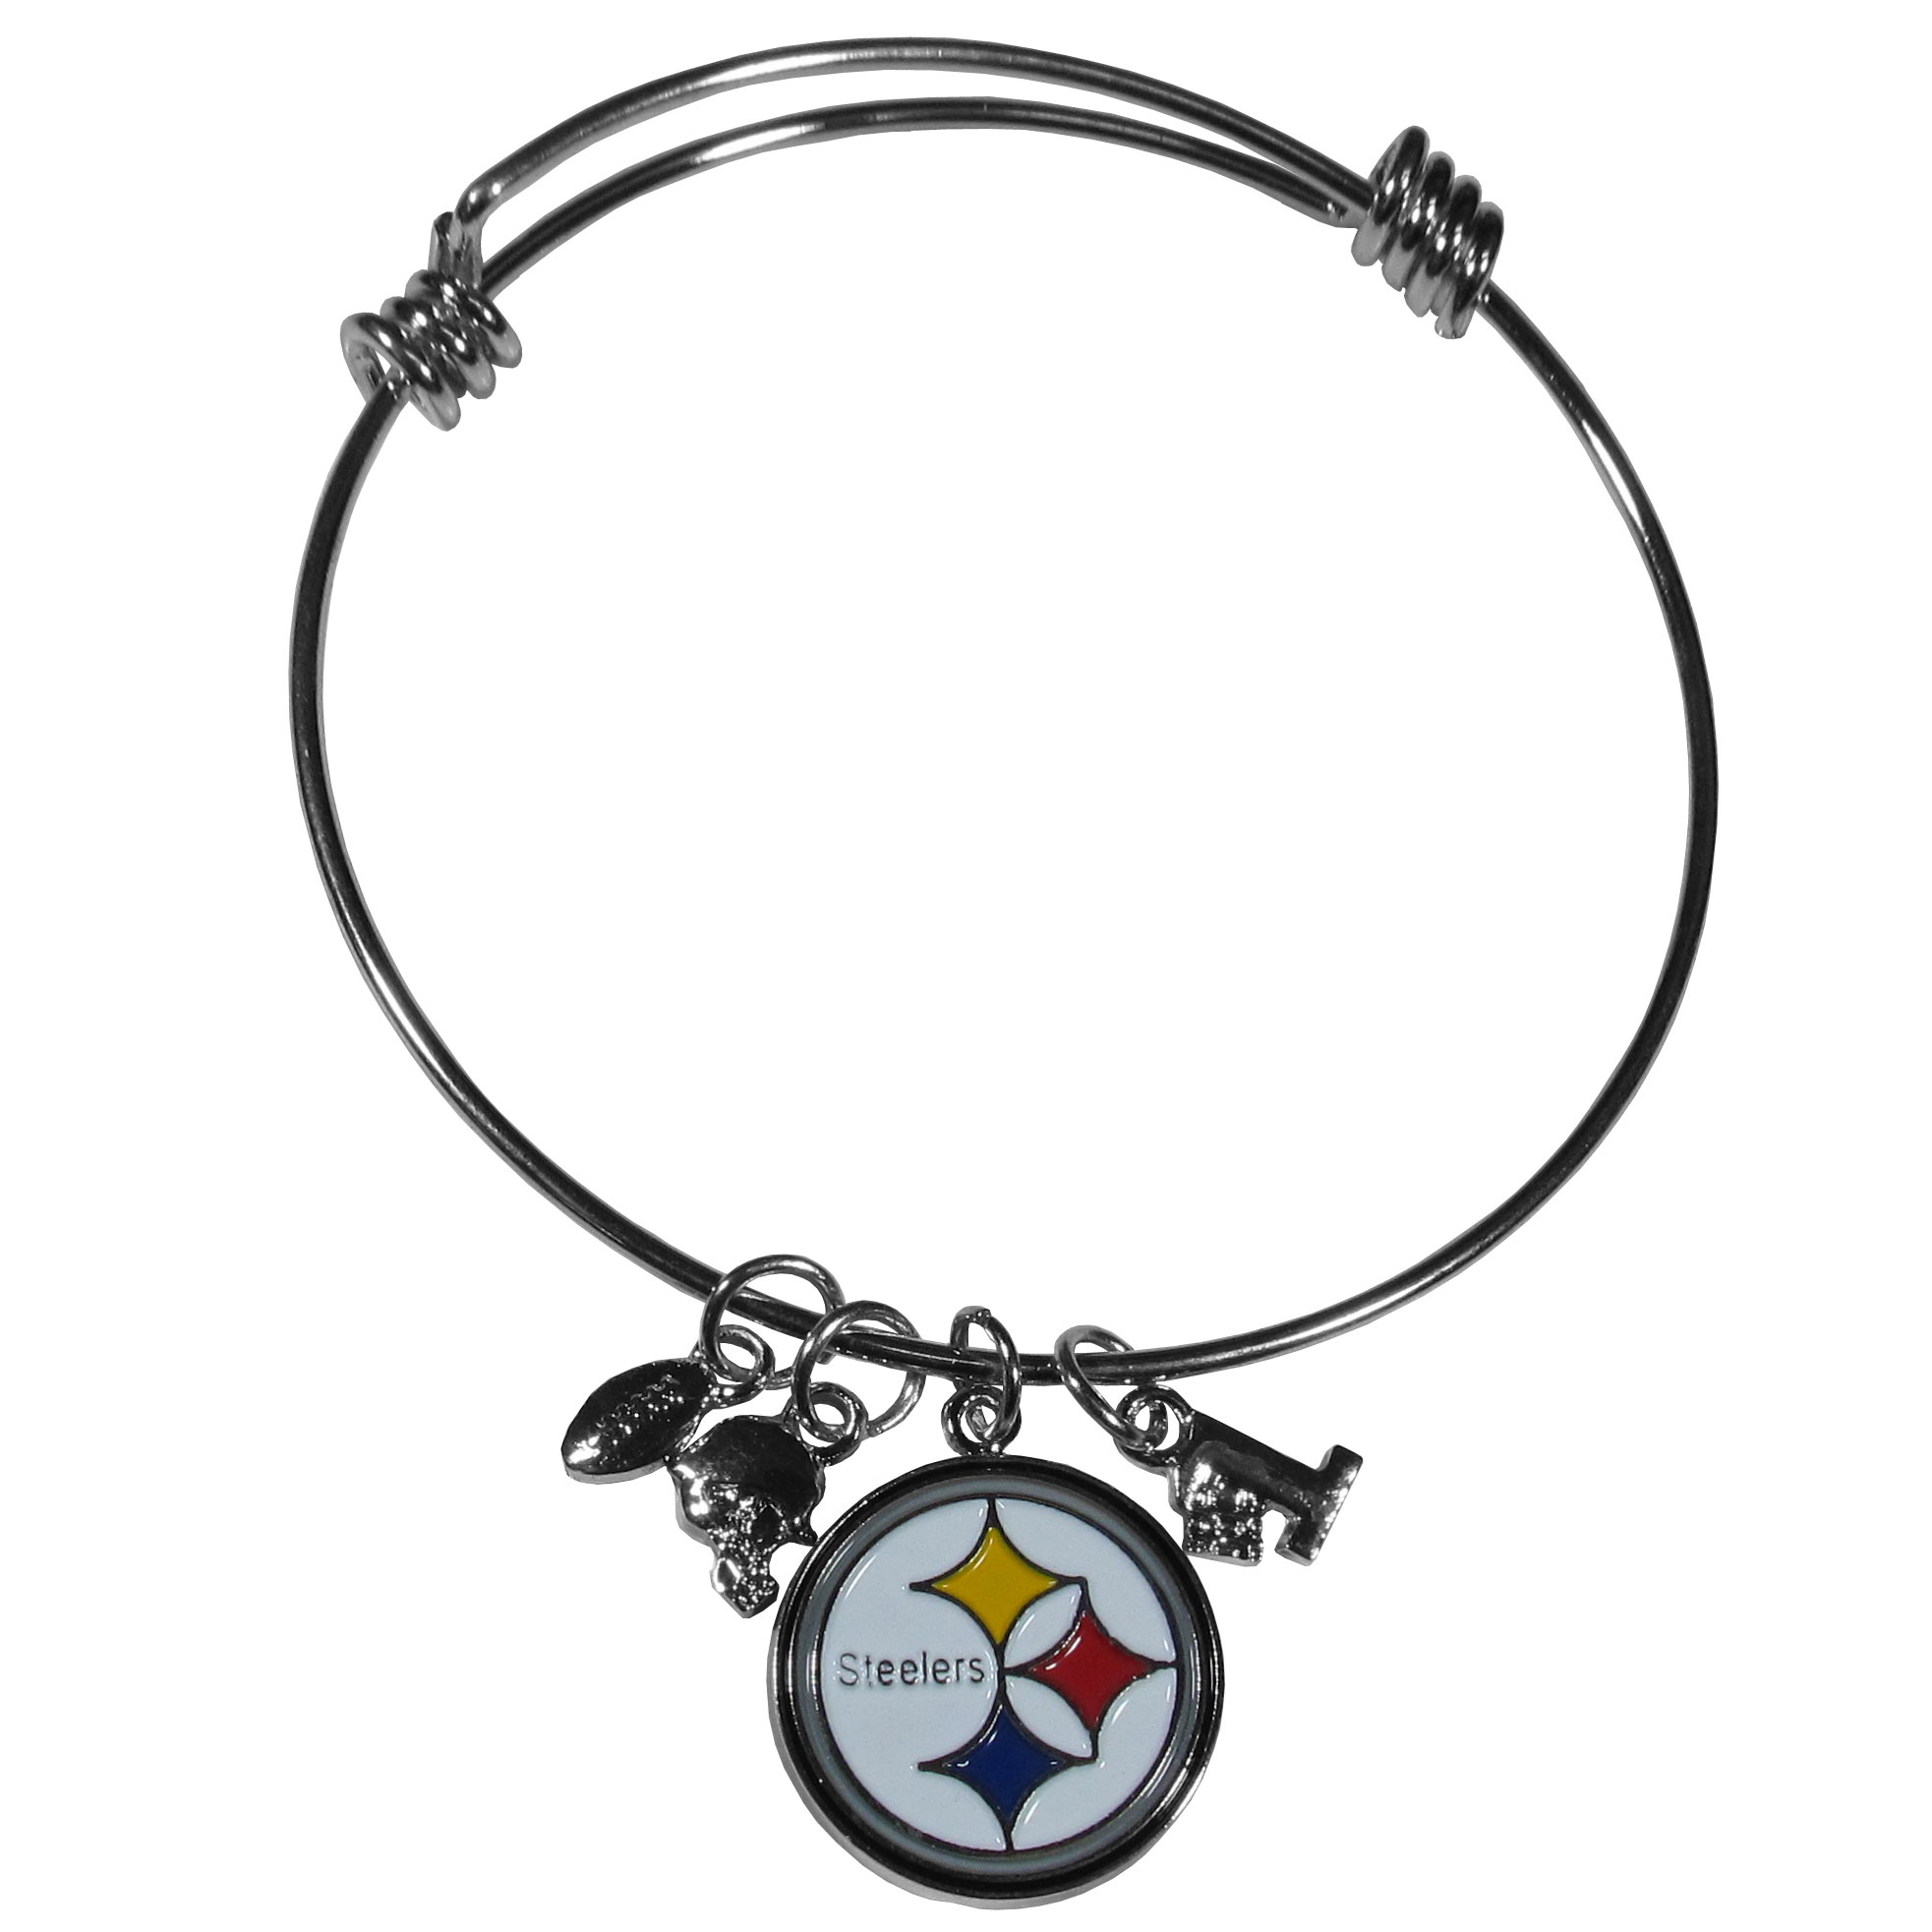 Pittsburgh Steelers Charm Bangle Bracelet - Adjustable wire bracelets are all the rage and this Pittsburgh Steelers bracelet matches the popular trend with your beloved team. The bracelet features 4 charms in total, each feature exceptional detail and the team charm has enameled team colors.